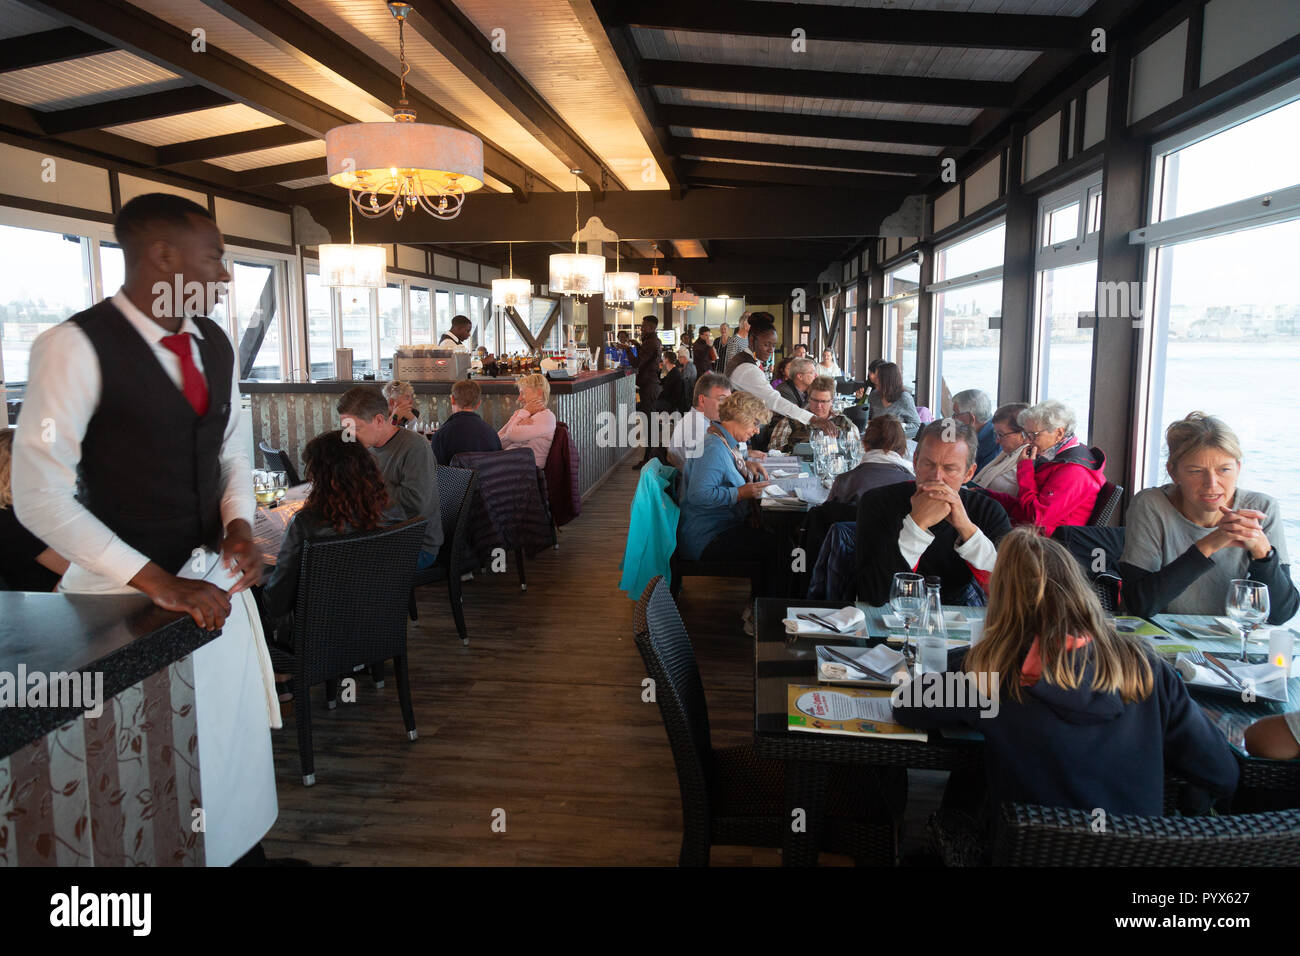 Swakopmund Namibia; people eating in the interior of The Jetty restaurant, Swakopmund, Namibia Africa - Stock Image